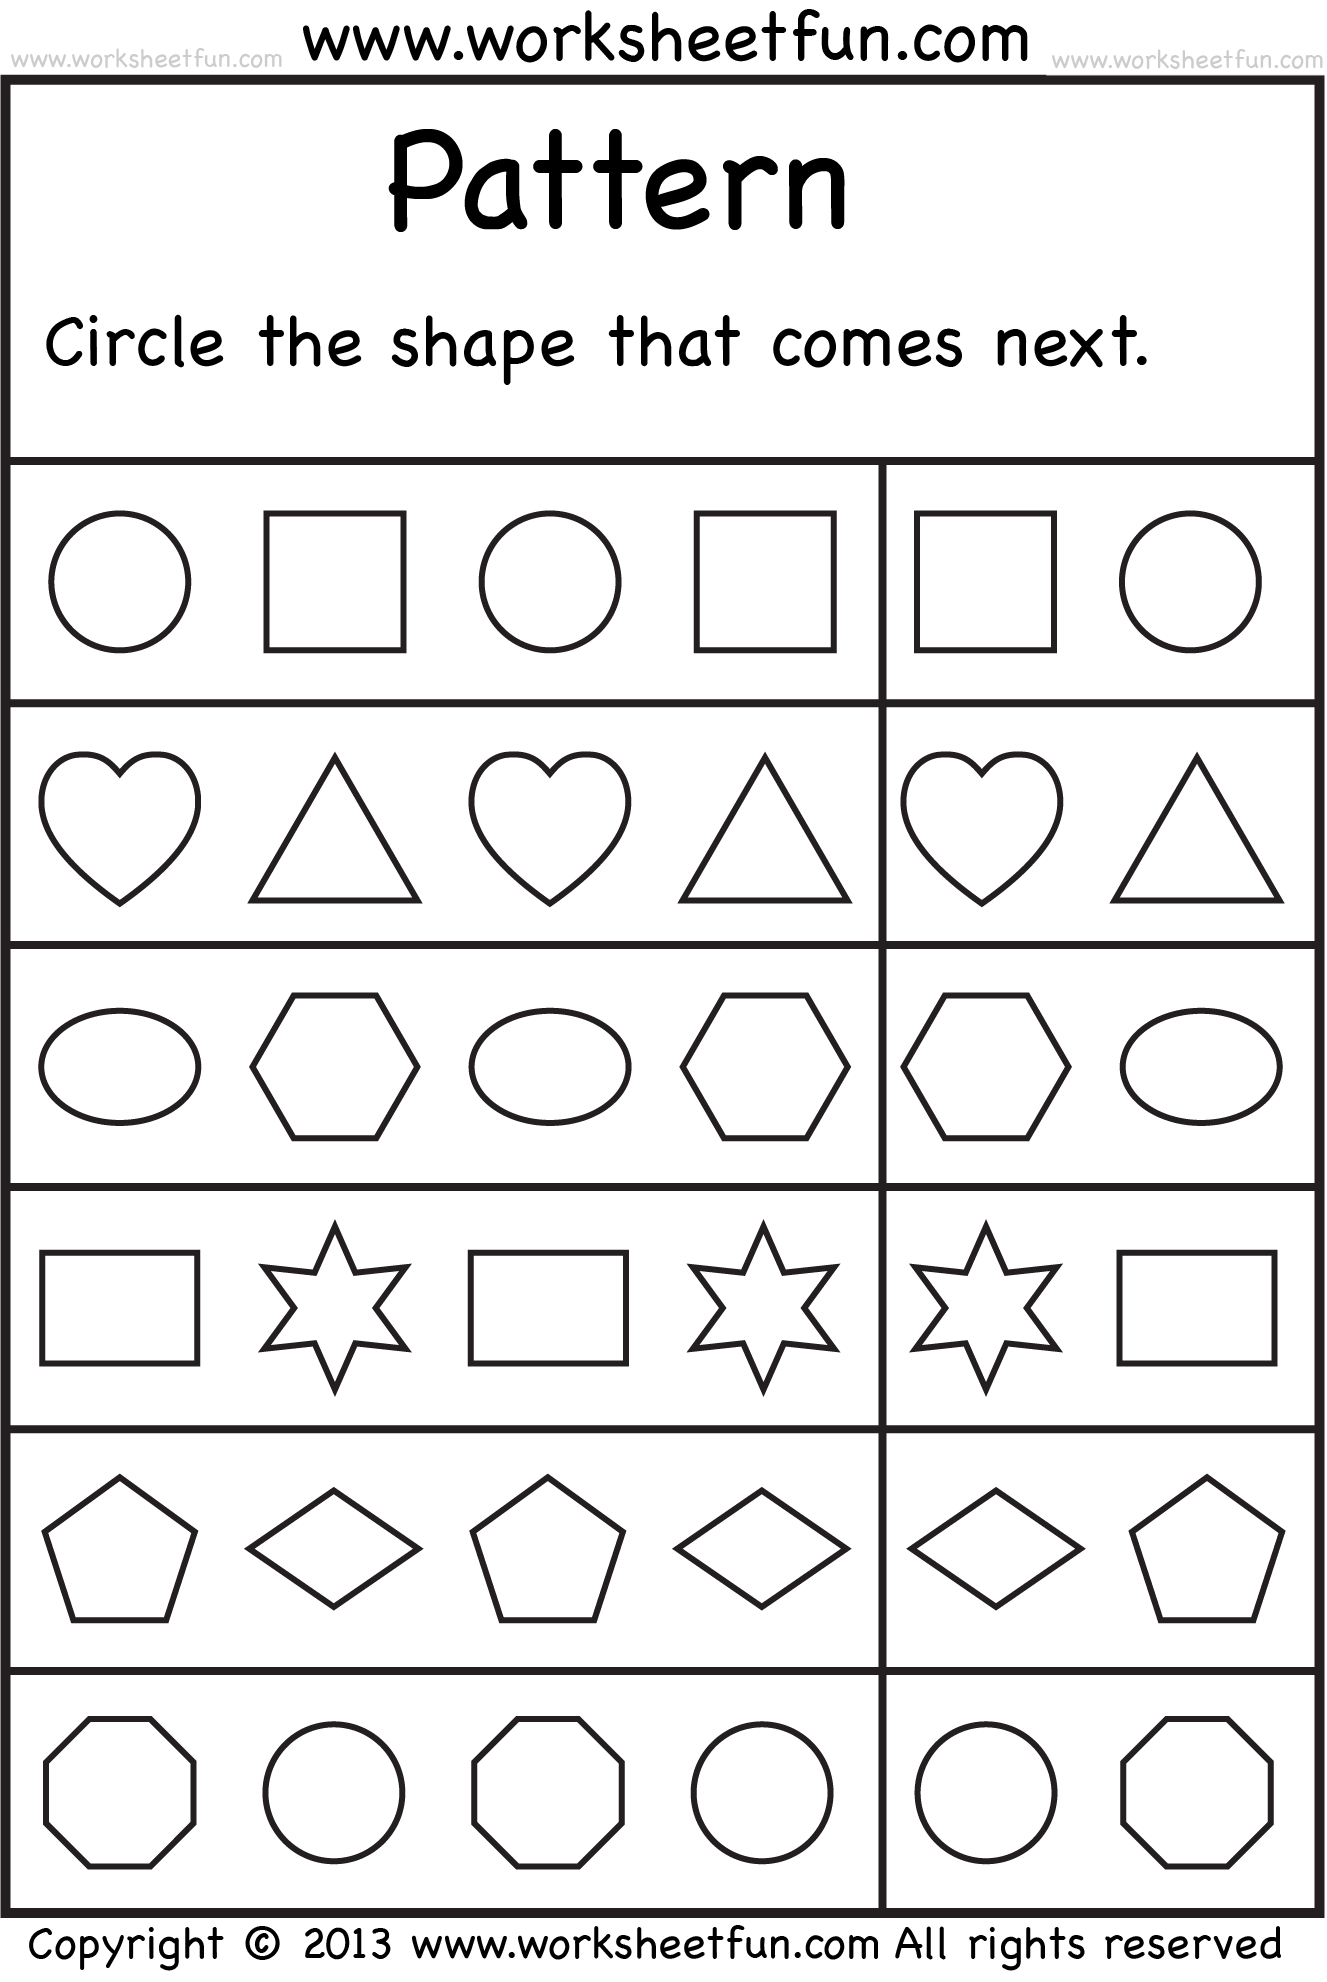 Weirdmailus  Unusual  Images About School Worksheets On Pinterest  Number Words  With Outstanding  Images About School Worksheets On Pinterest  Number Words Alphabet Worksheets And Free Printable Kindergarten Worksheets With Divine Practice Abc Worksheets Also Prefix Worksheets Free In Addition Halloween Fraction Worksheets And Square And Cube Root Worksheets As Well As Addition Subtraction Coloring Worksheets Additionally Halloween Music Worksheets From Pinterestcom With Weirdmailus  Outstanding  Images About School Worksheets On Pinterest  Number Words  With Divine  Images About School Worksheets On Pinterest  Number Words Alphabet Worksheets And Free Printable Kindergarten Worksheets And Unusual Practice Abc Worksheets Also Prefix Worksheets Free In Addition Halloween Fraction Worksheets From Pinterestcom